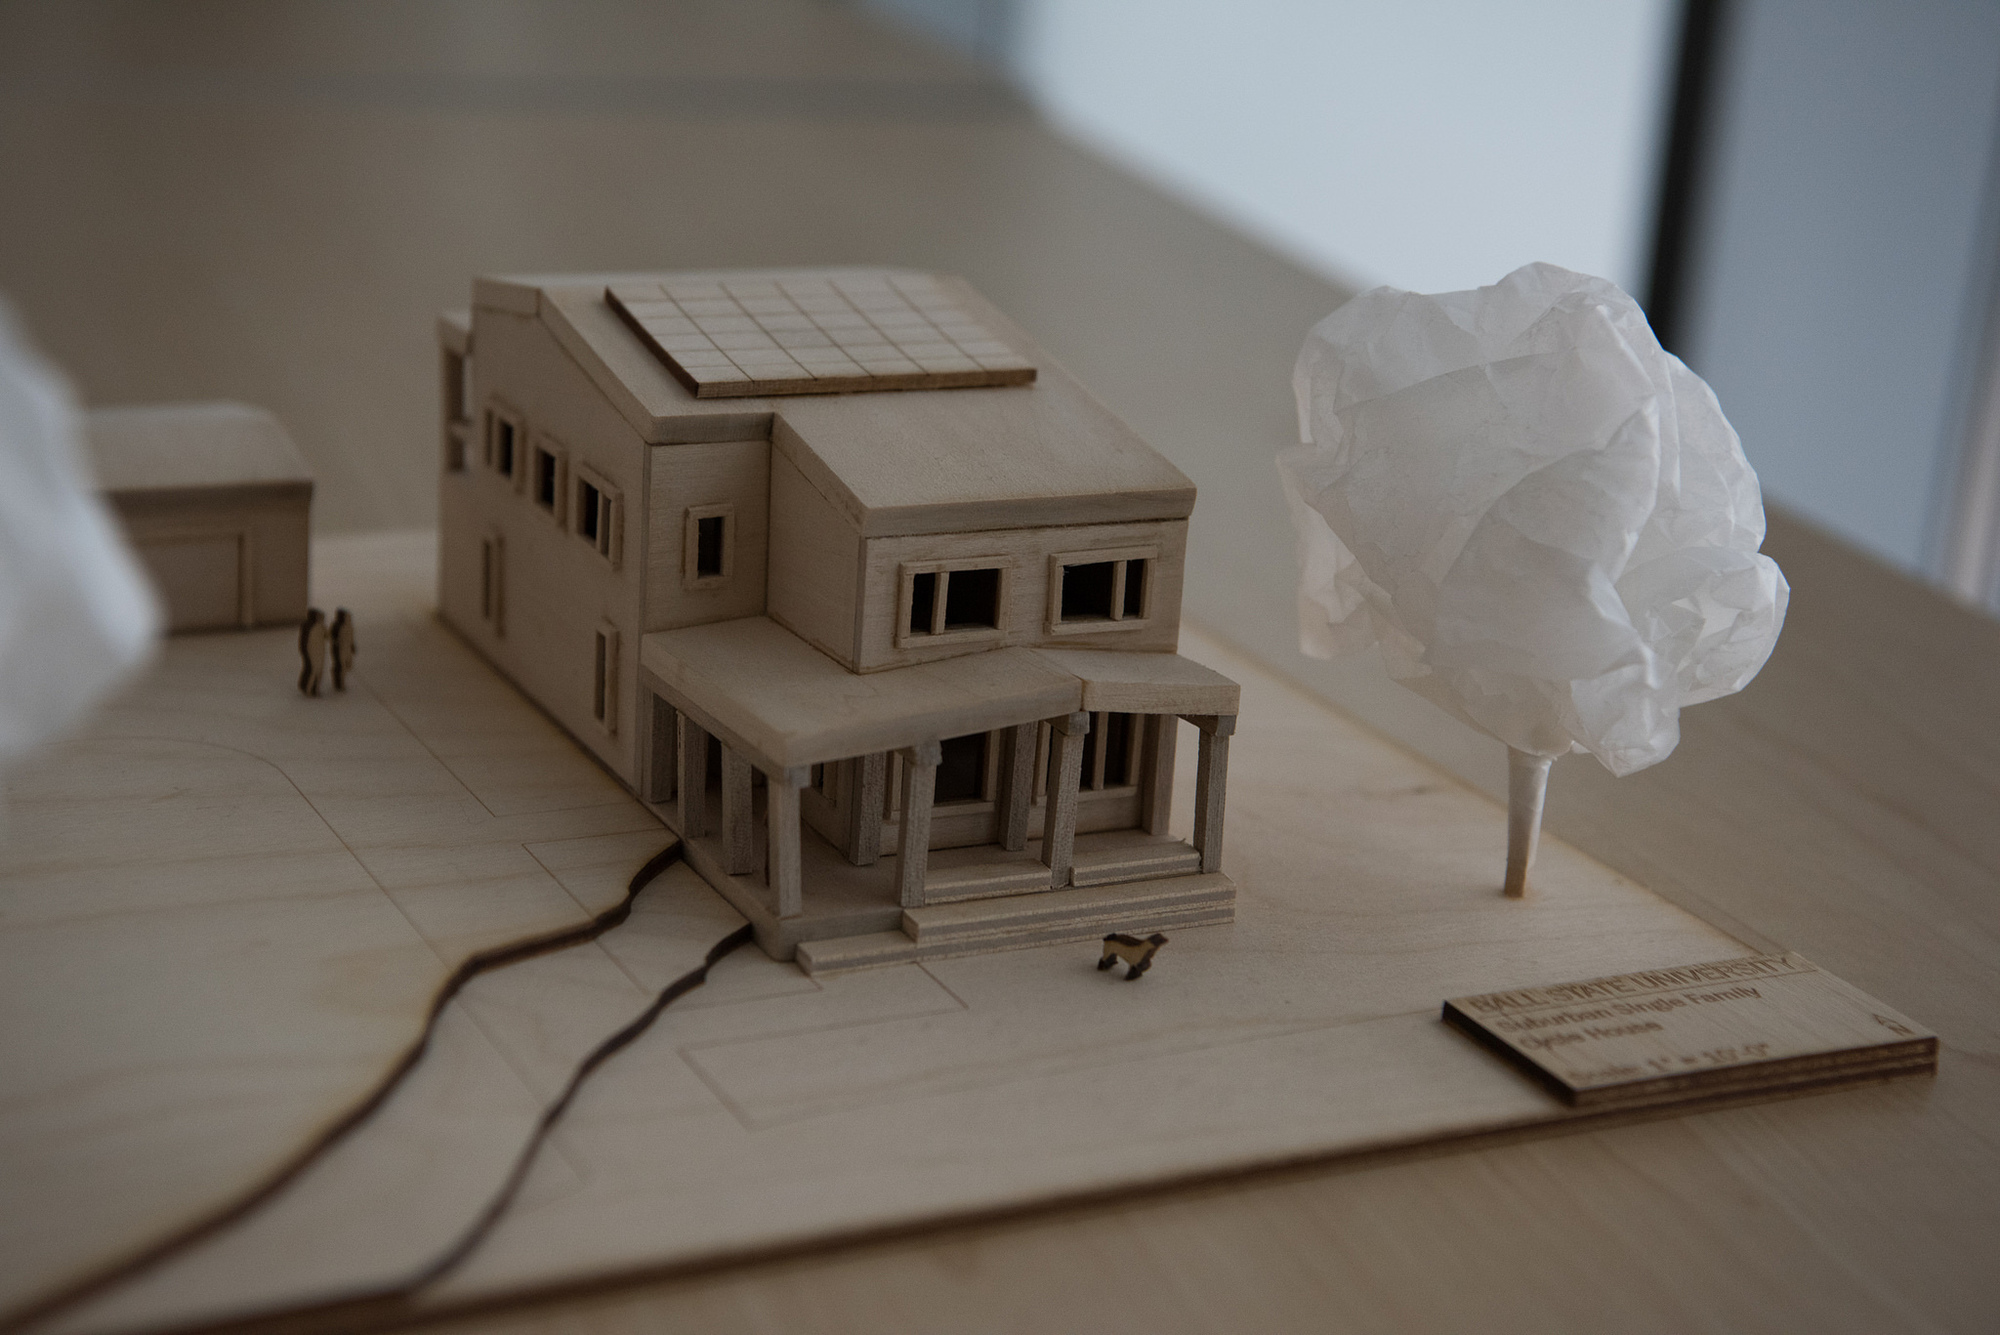 House model from a past competition.